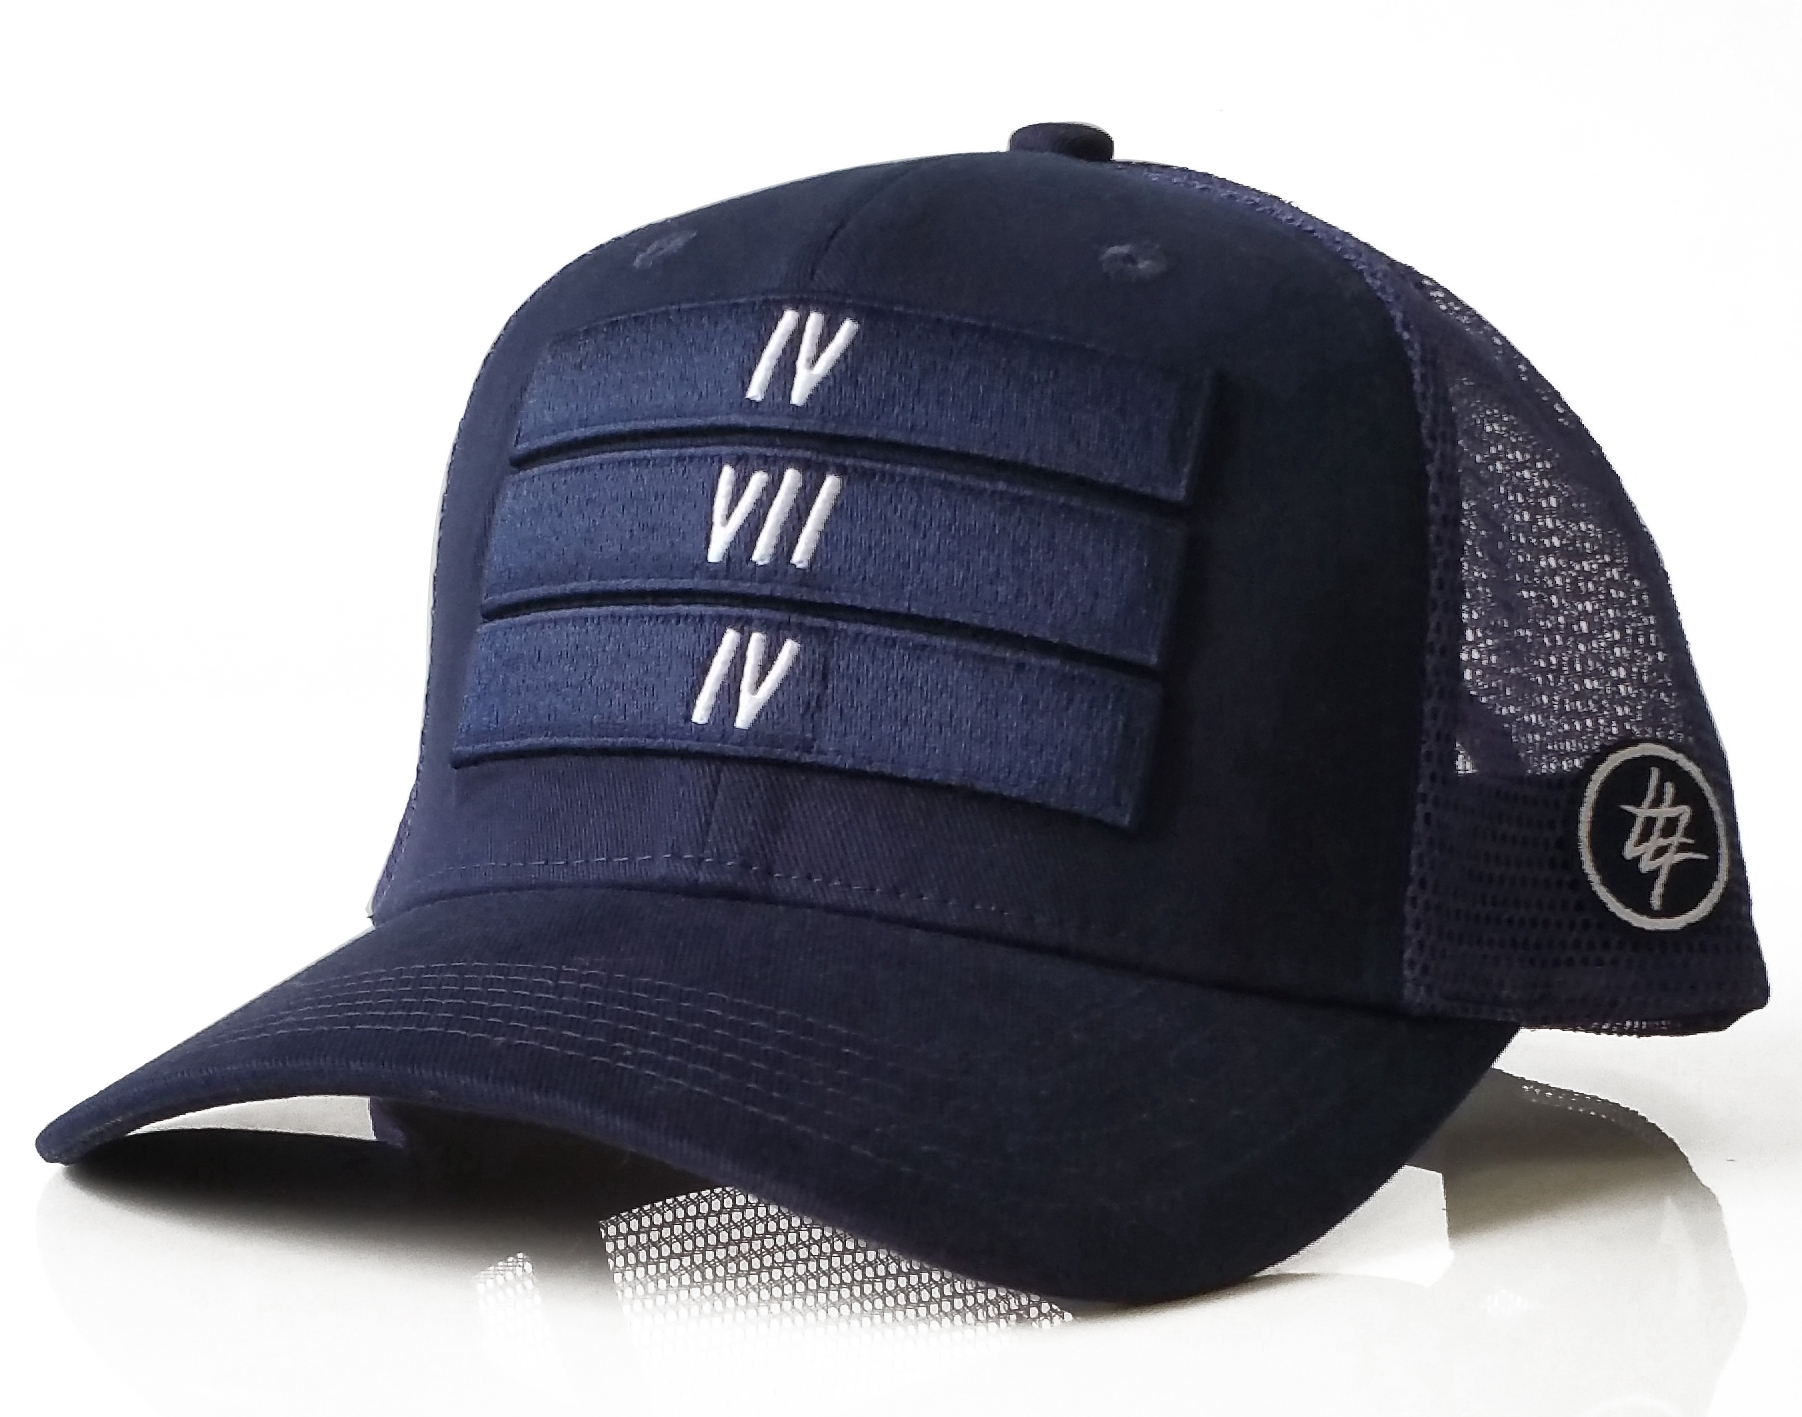 Fashion dark blue 6 panel collection trucker hat